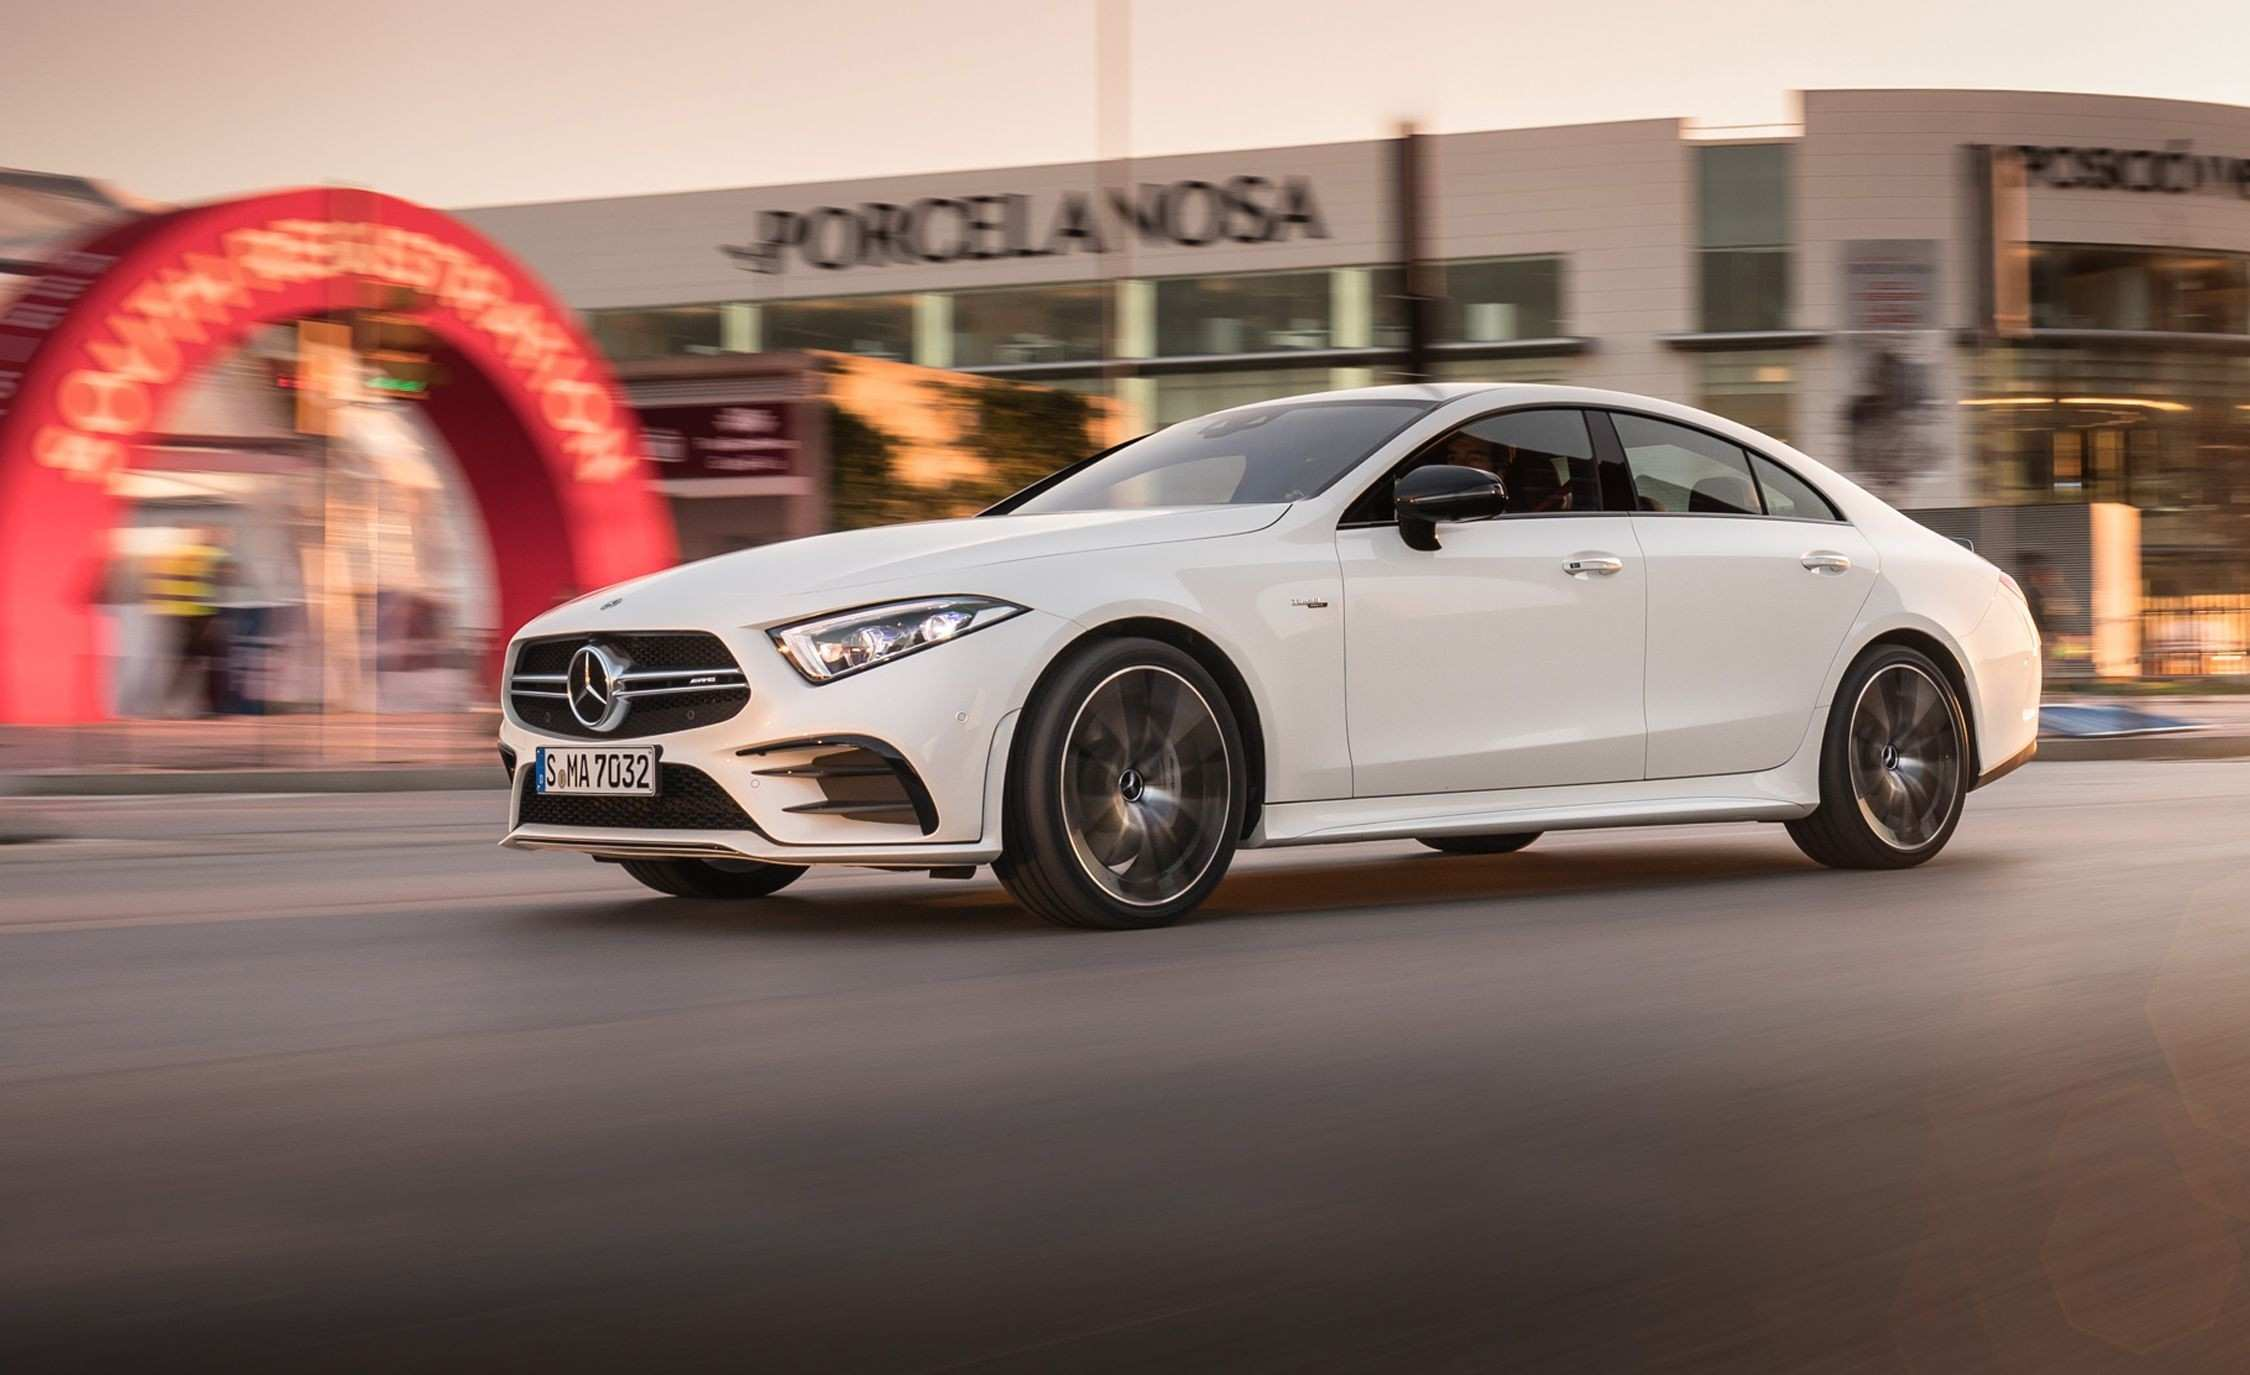 55 All New New Mercedes 2019 E Class Price First Drive Specs and Review by New Mercedes 2019 E Class Price First Drive